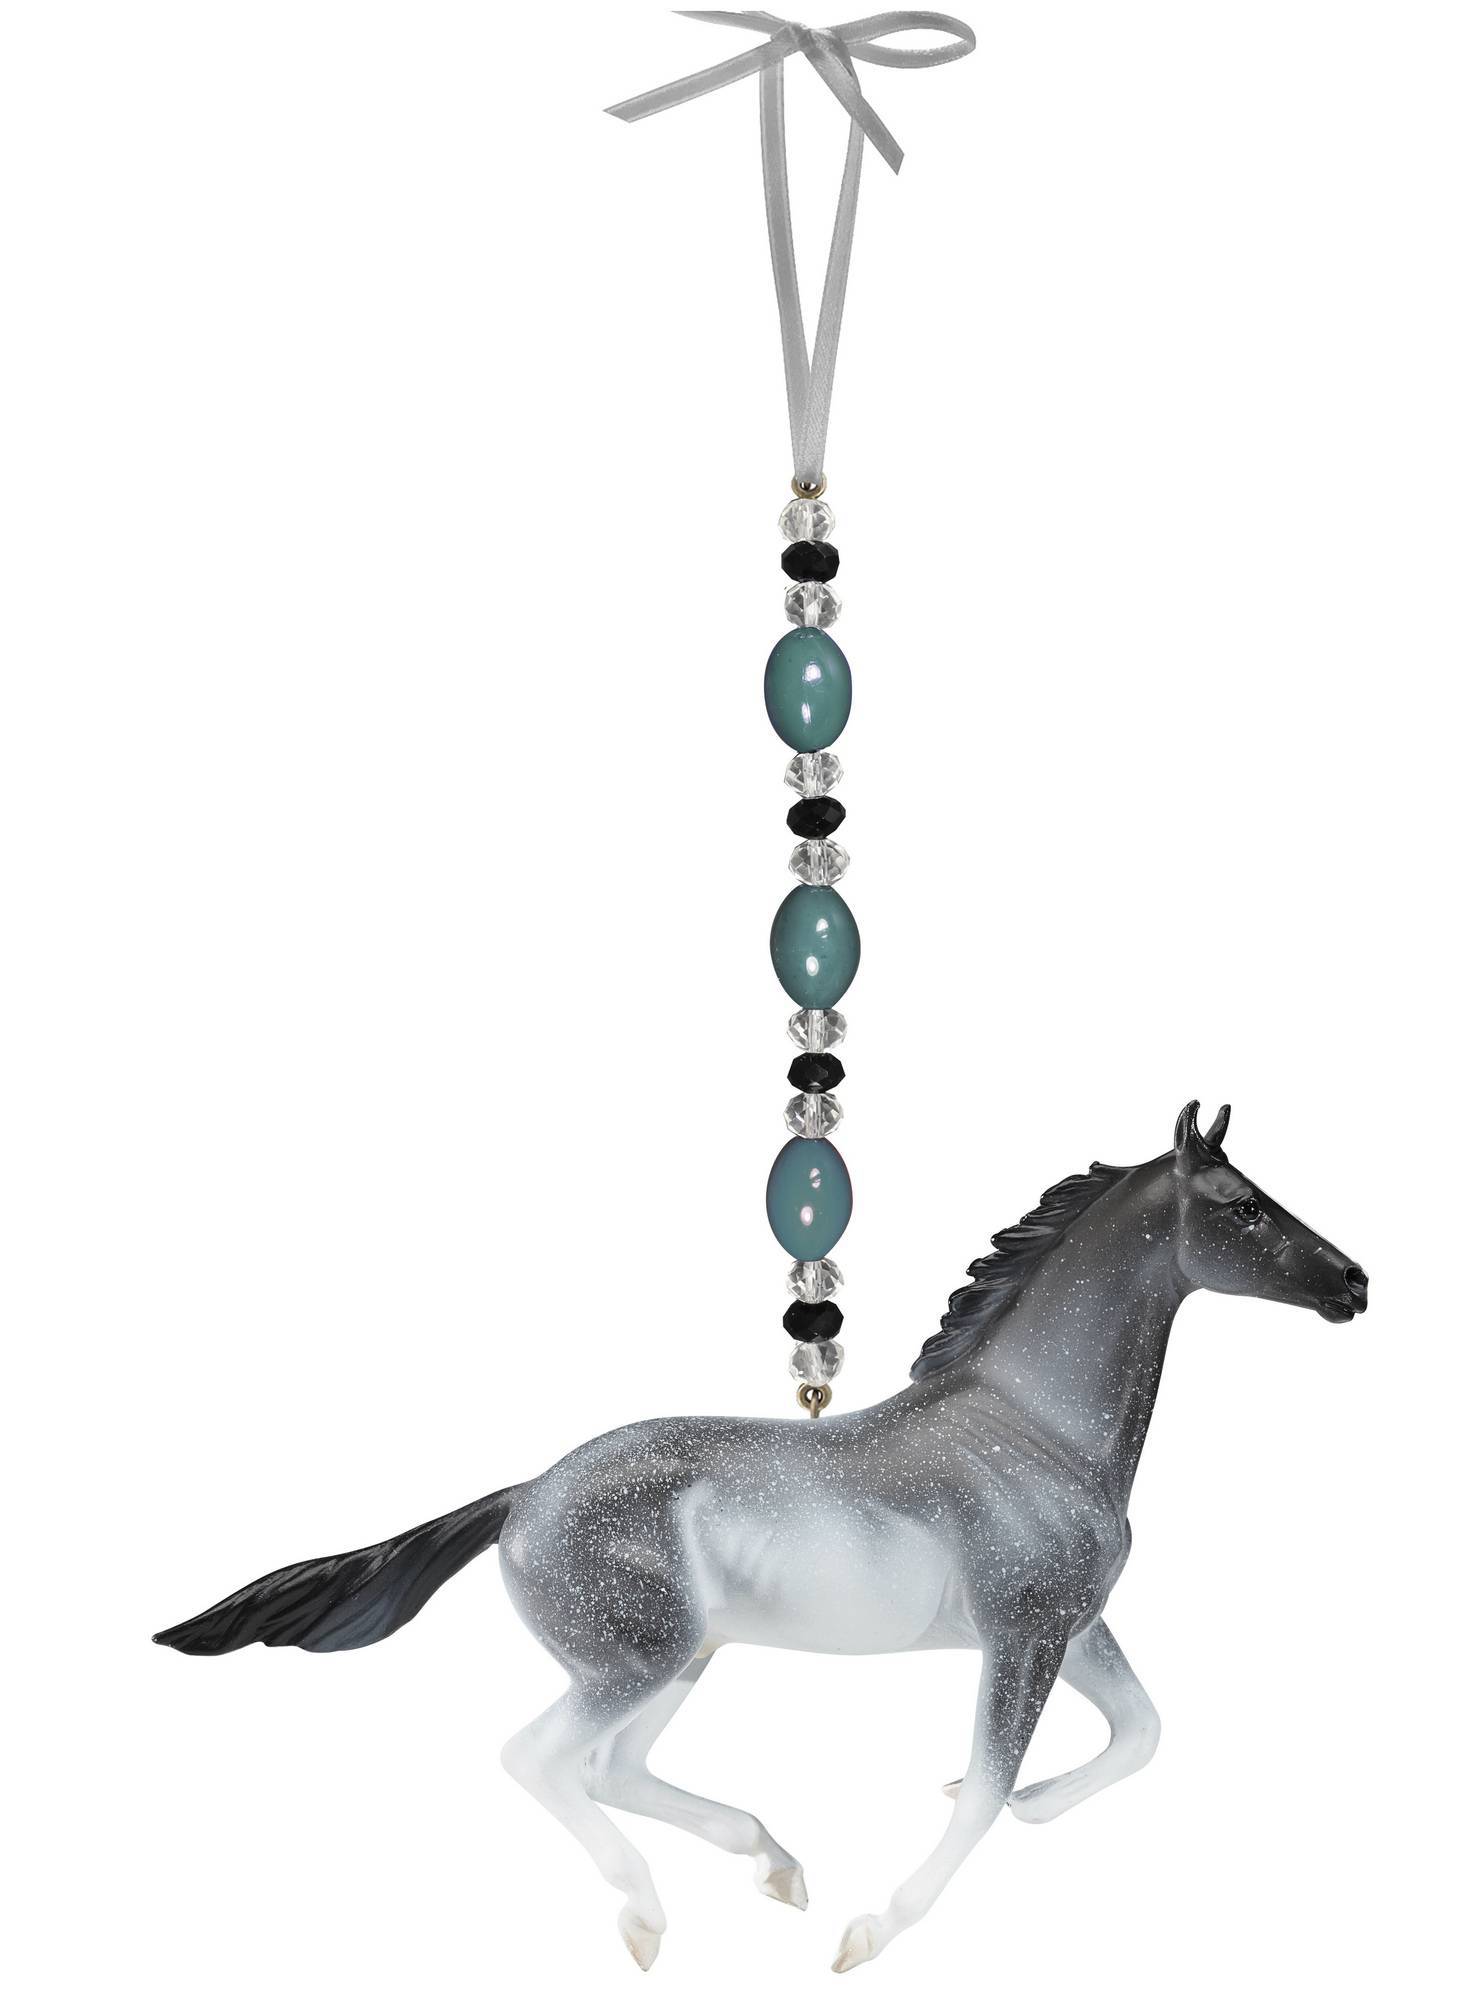 Breyer 2016 Bejeweled Ornament